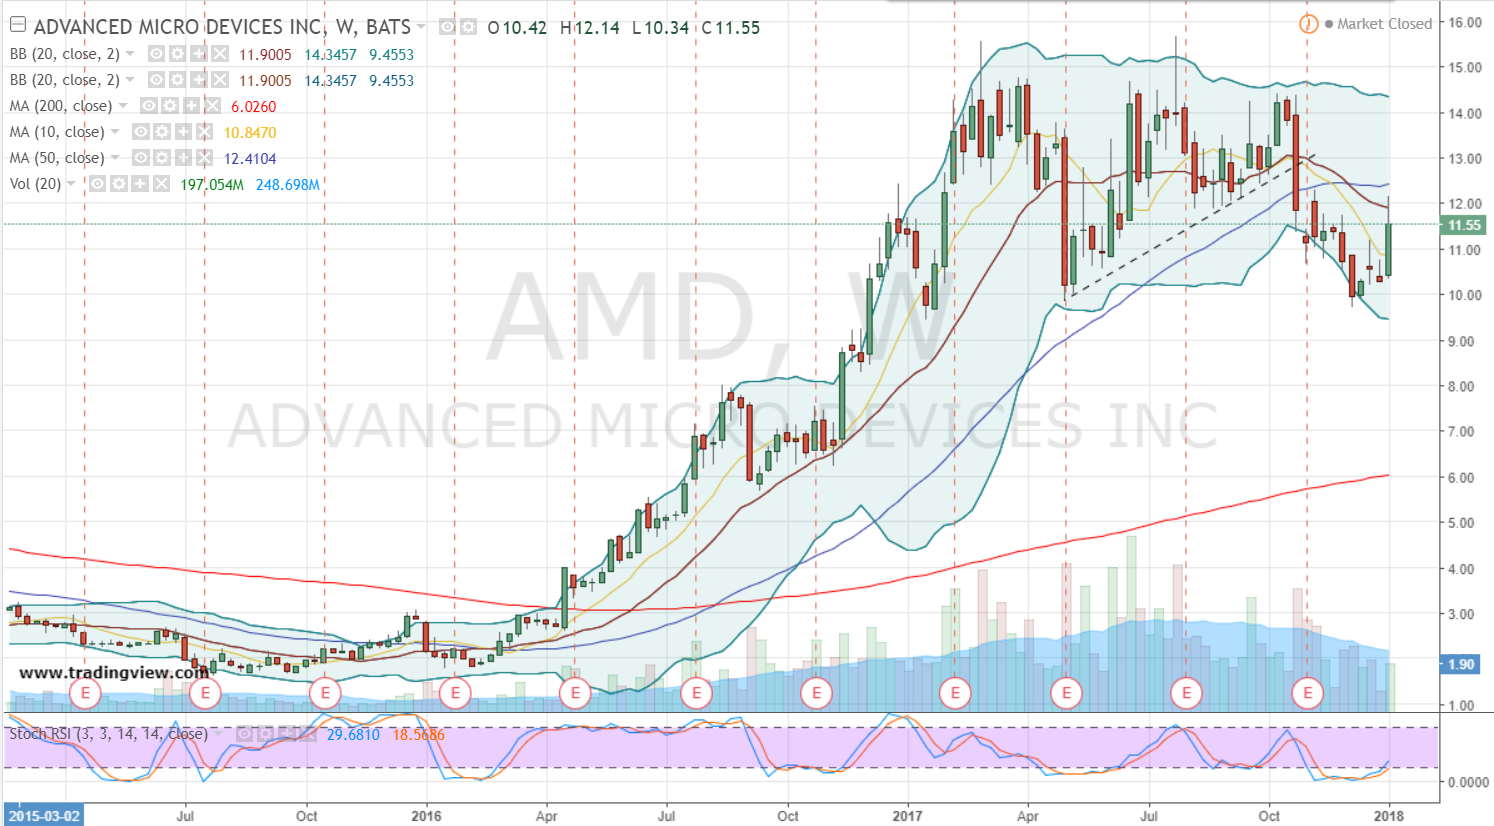 Advanced Micro Devices, Inc. (AMD) EPS Estimated At $0.02